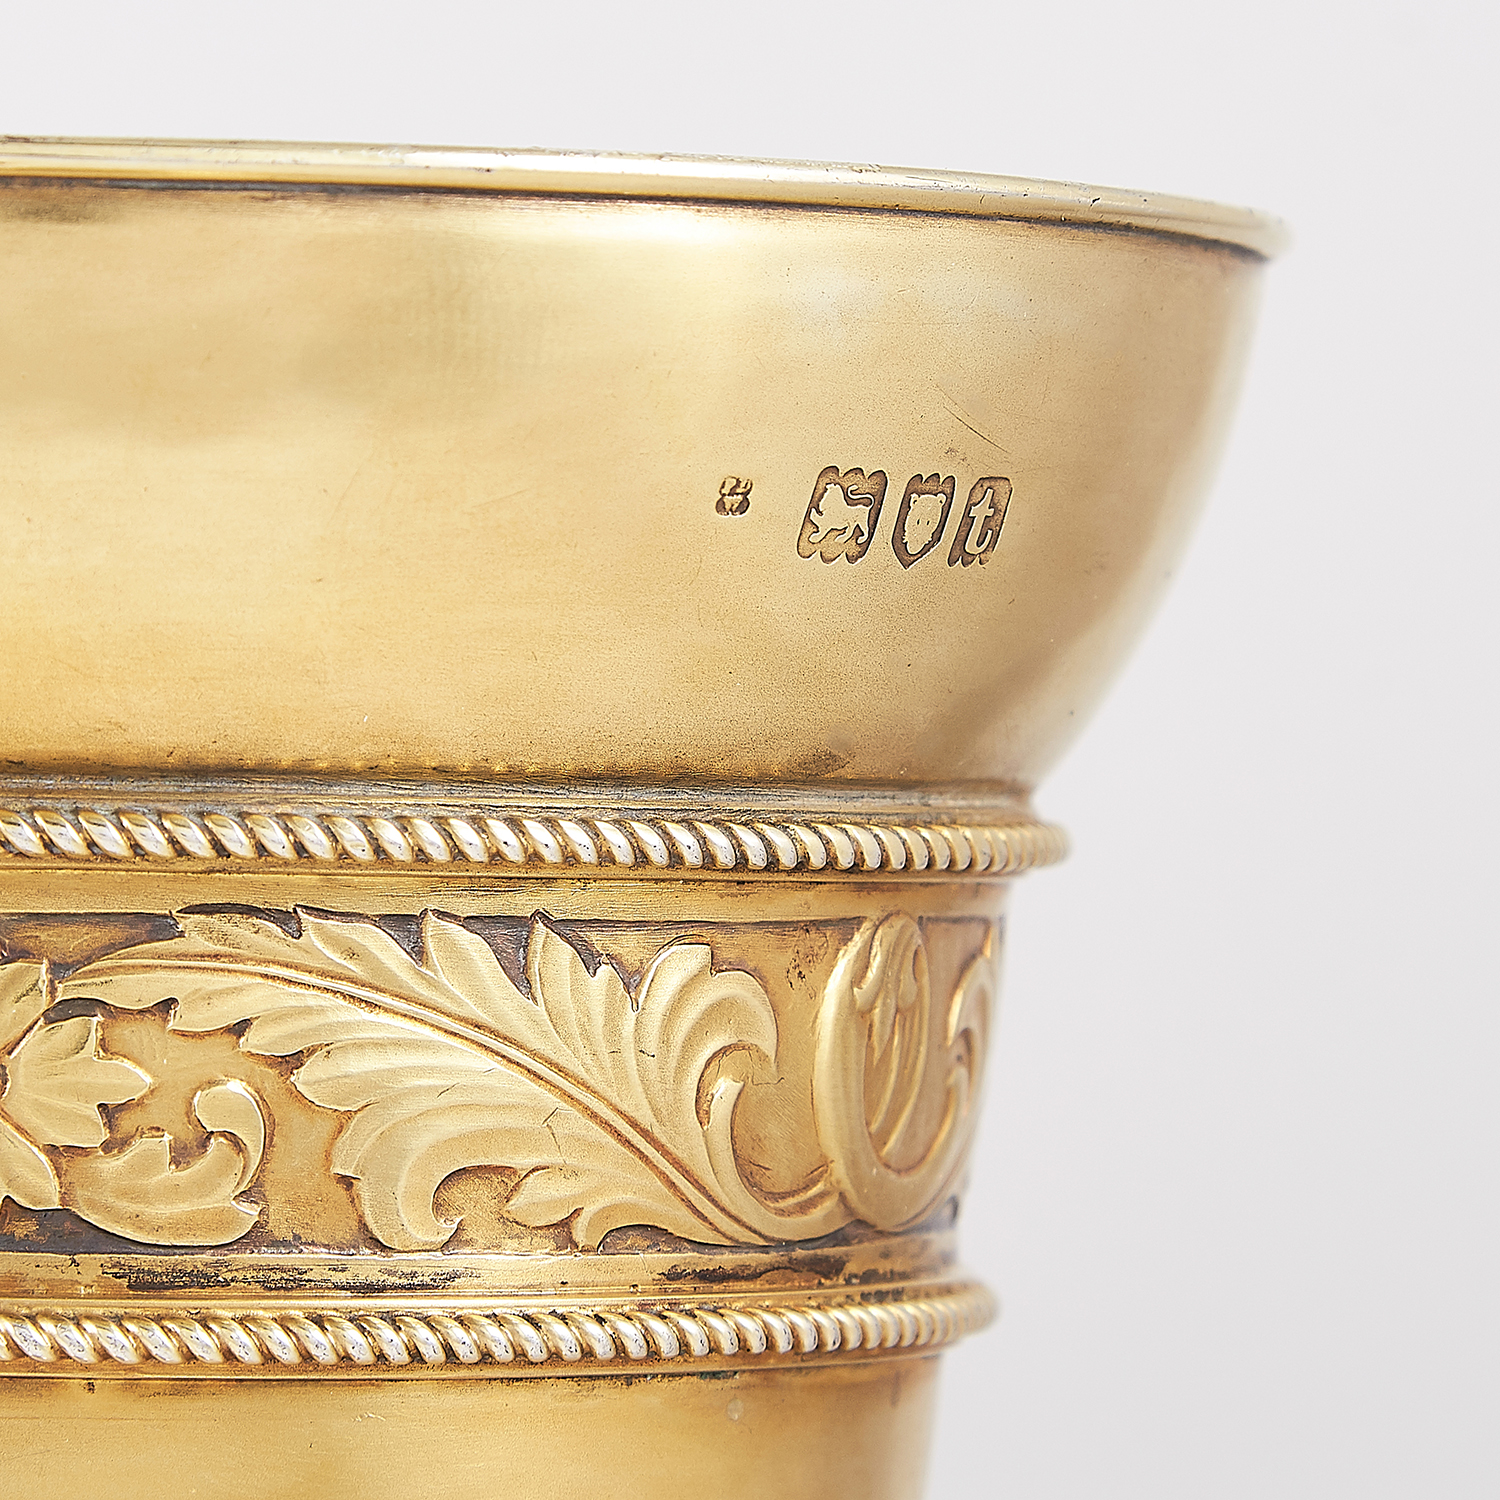 Los 9 - PAIR OF ANTIQUE STERLING SILVER GILT VASES, FREDERICK DENDY WRAY, LONDON 1914 the tapering bodies